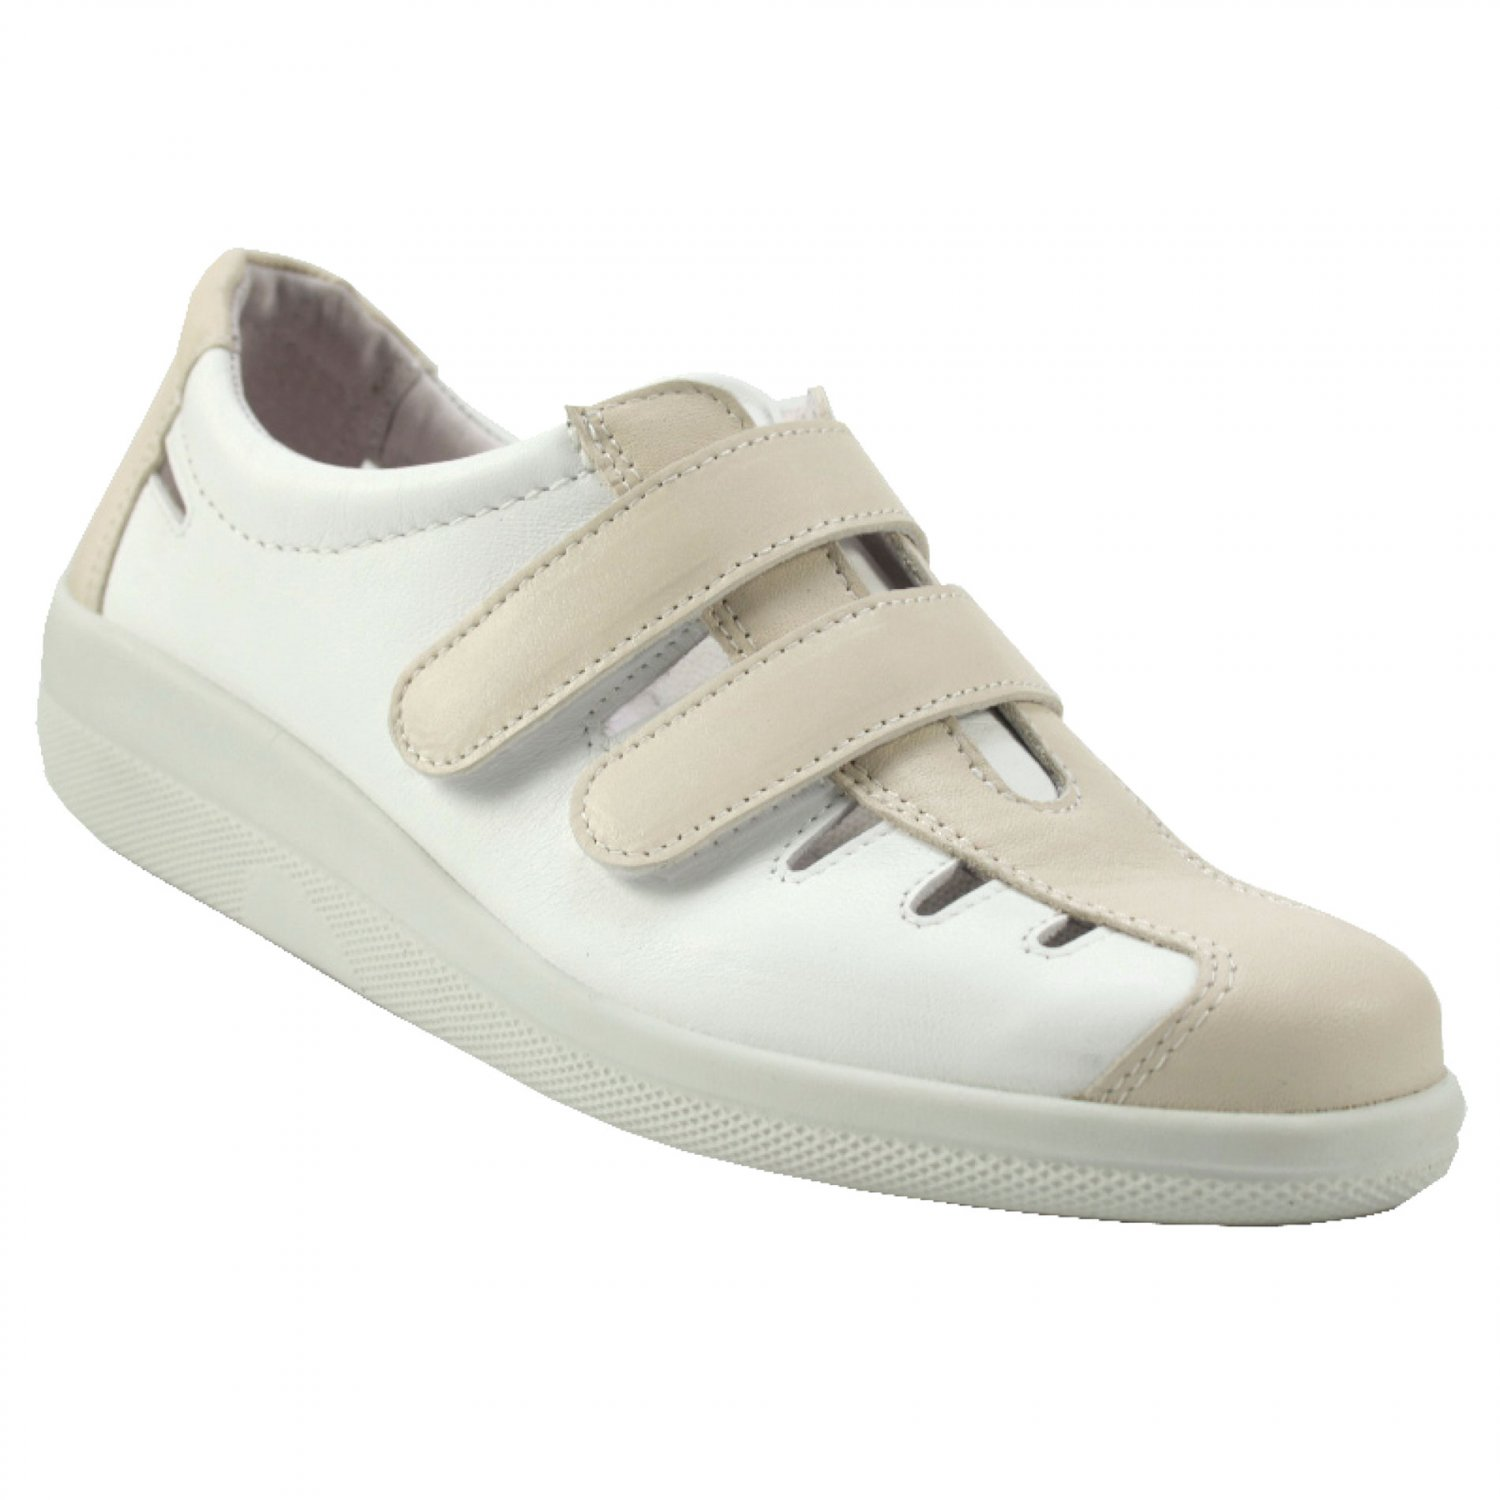 Spring Step JAILYN Sneakers Shoes All Sizes & Colors $